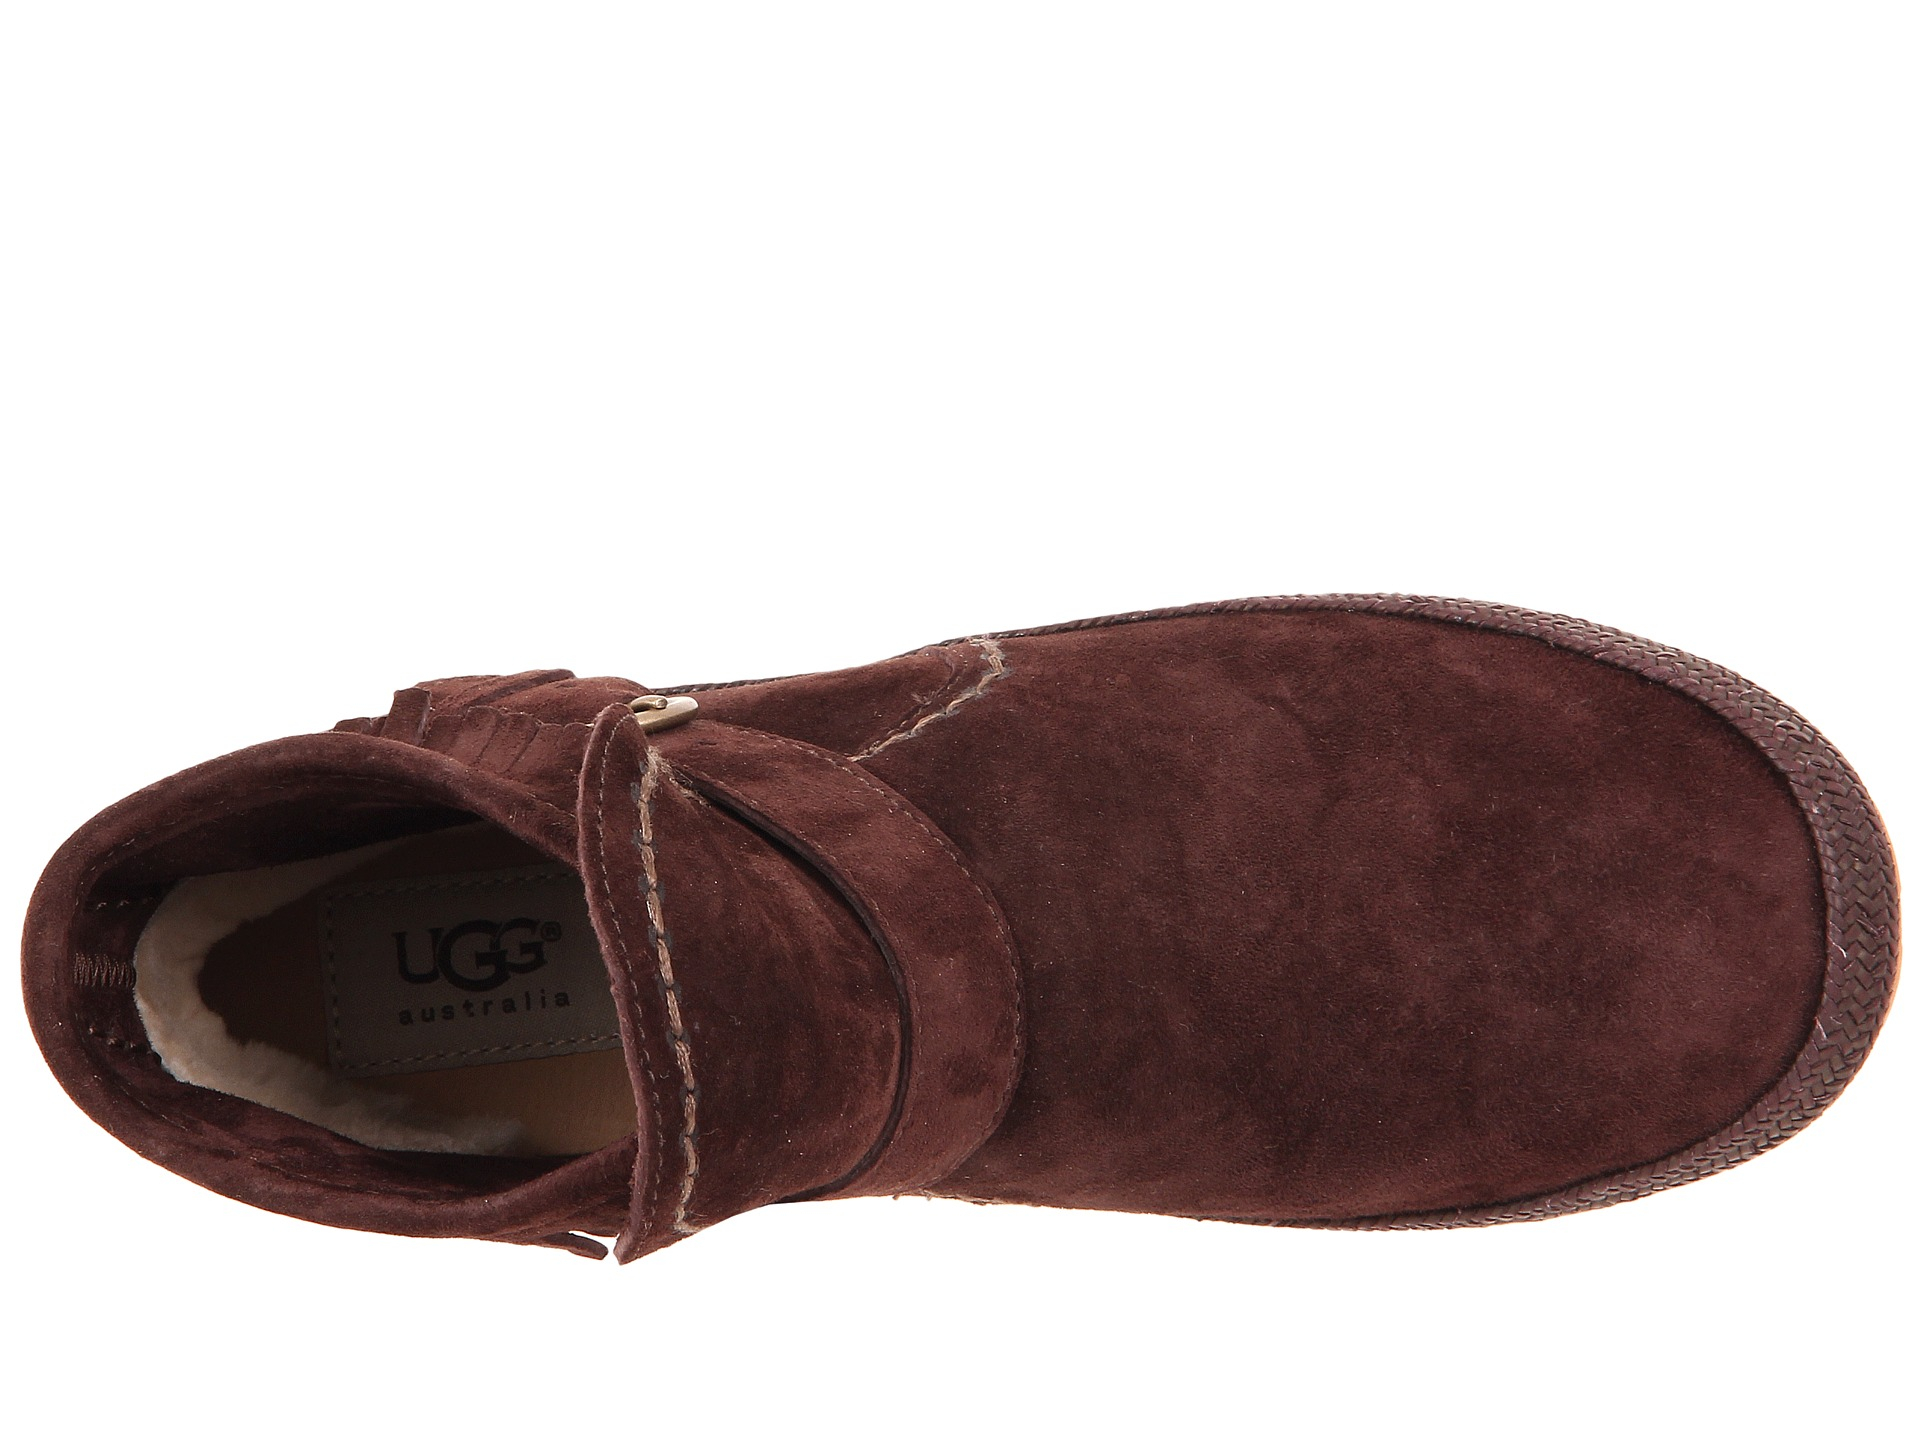 Ugg Womens Amely Shoes Fawn